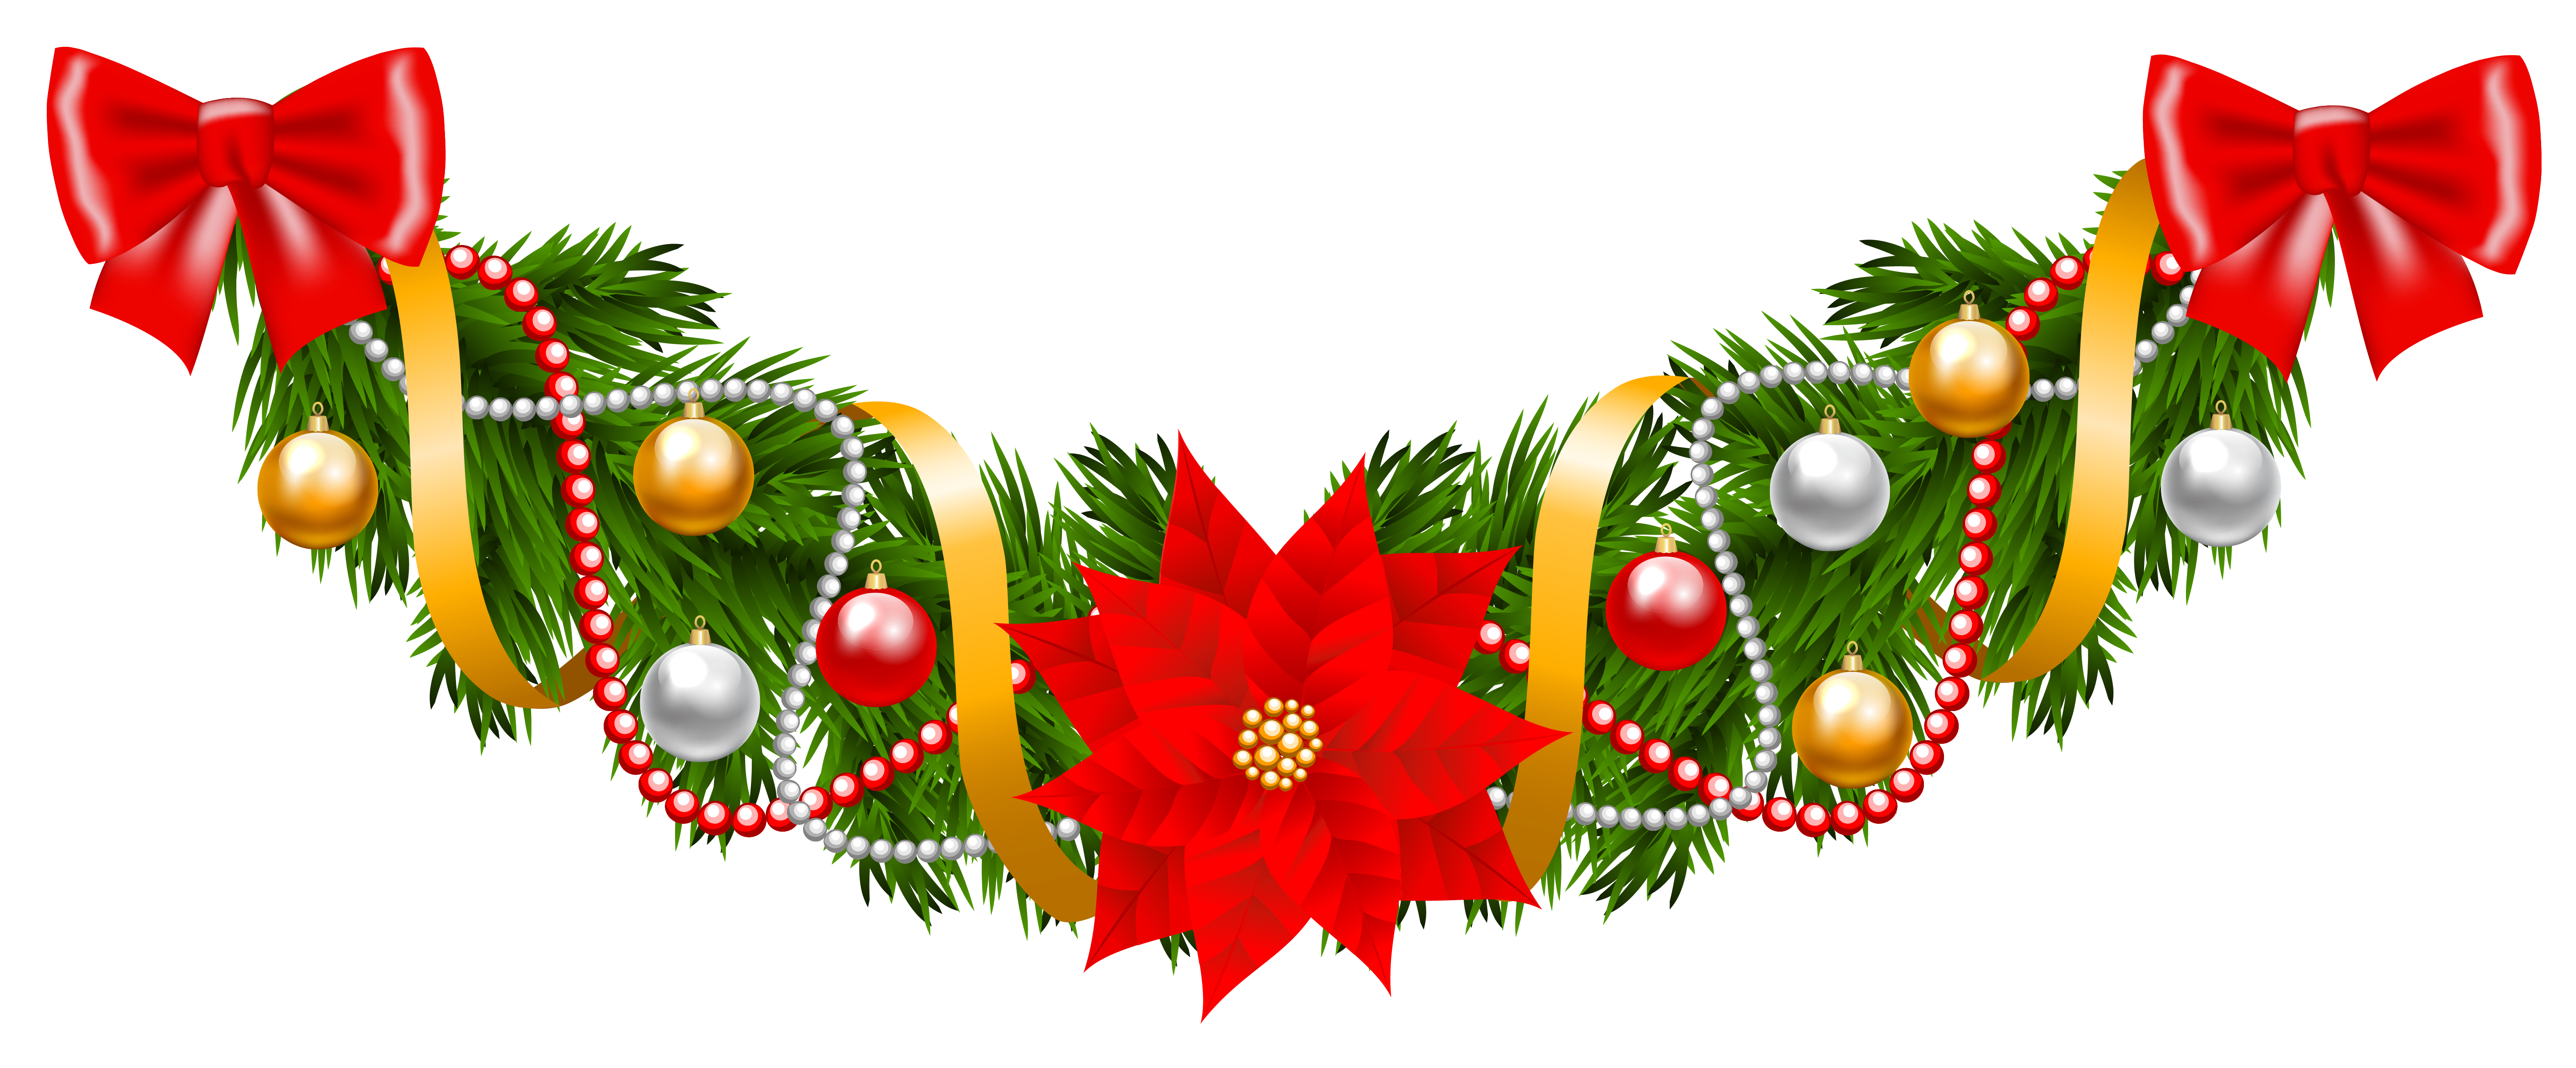 Poinsettia Garland Png - Christmas Pine Deco Garland with Poinsettia PNG Clipart Image ...